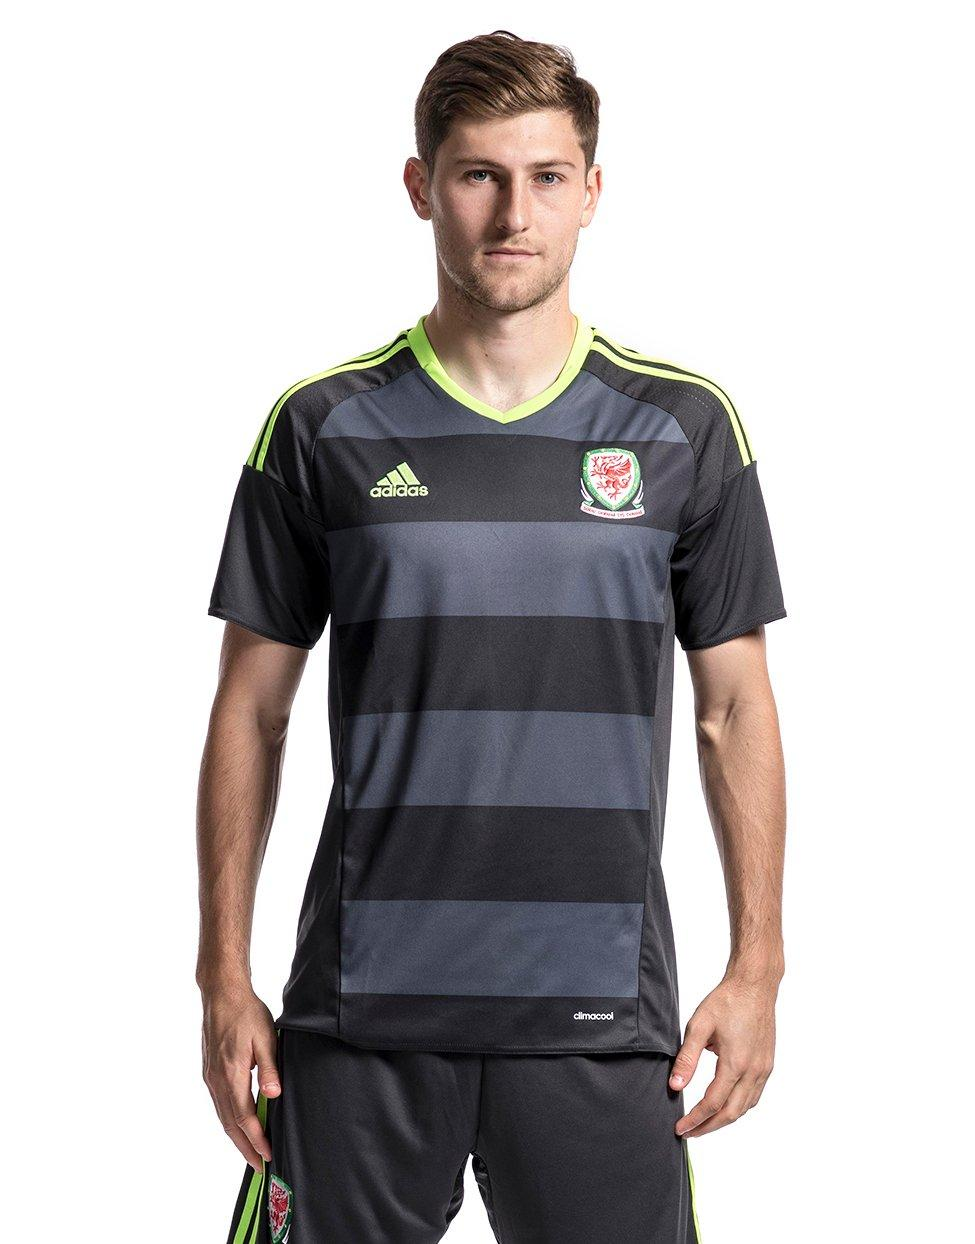 the latest 768b9 3f009 Wales 2016 Adidas Away Kit | 15/16 Kits | Football shirt blog